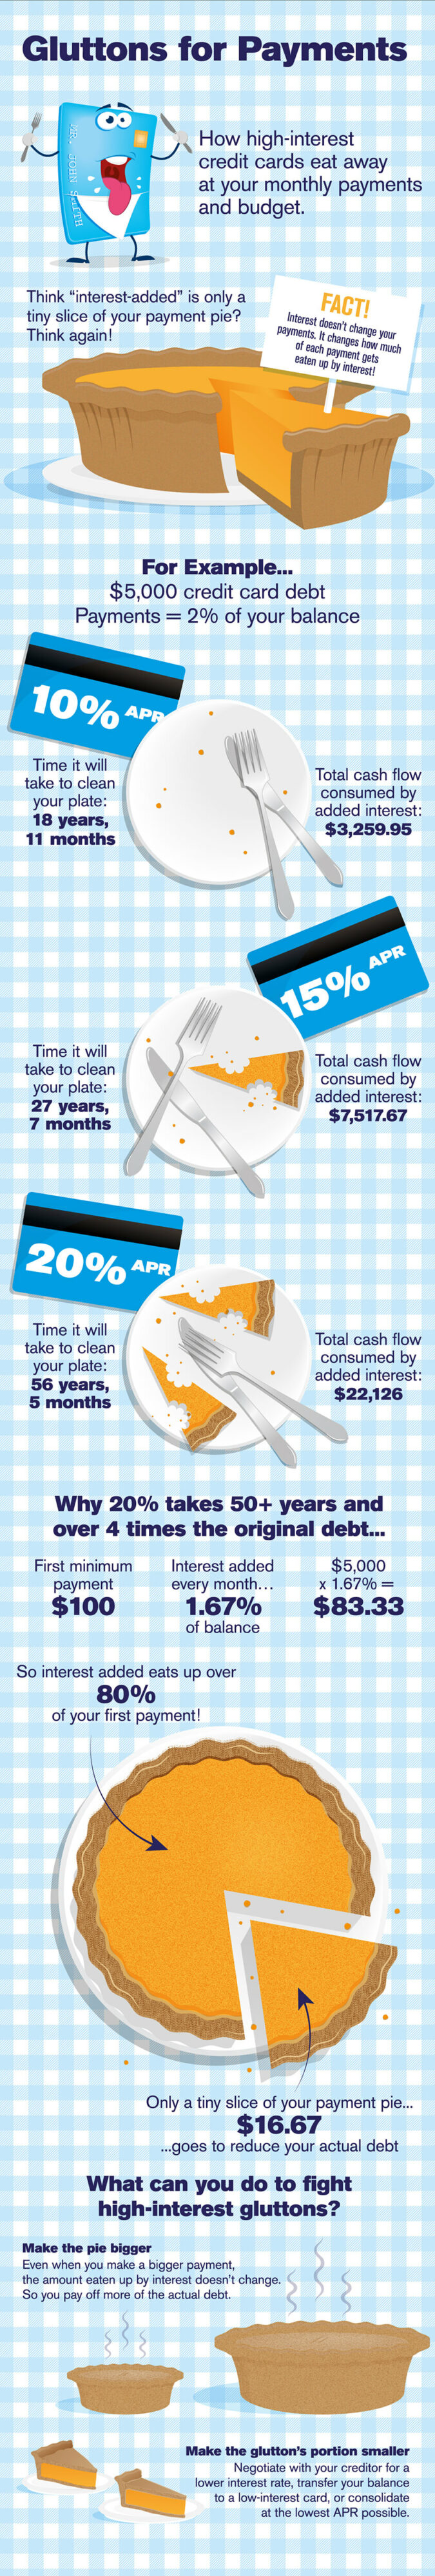 Glutons for Payments infographic